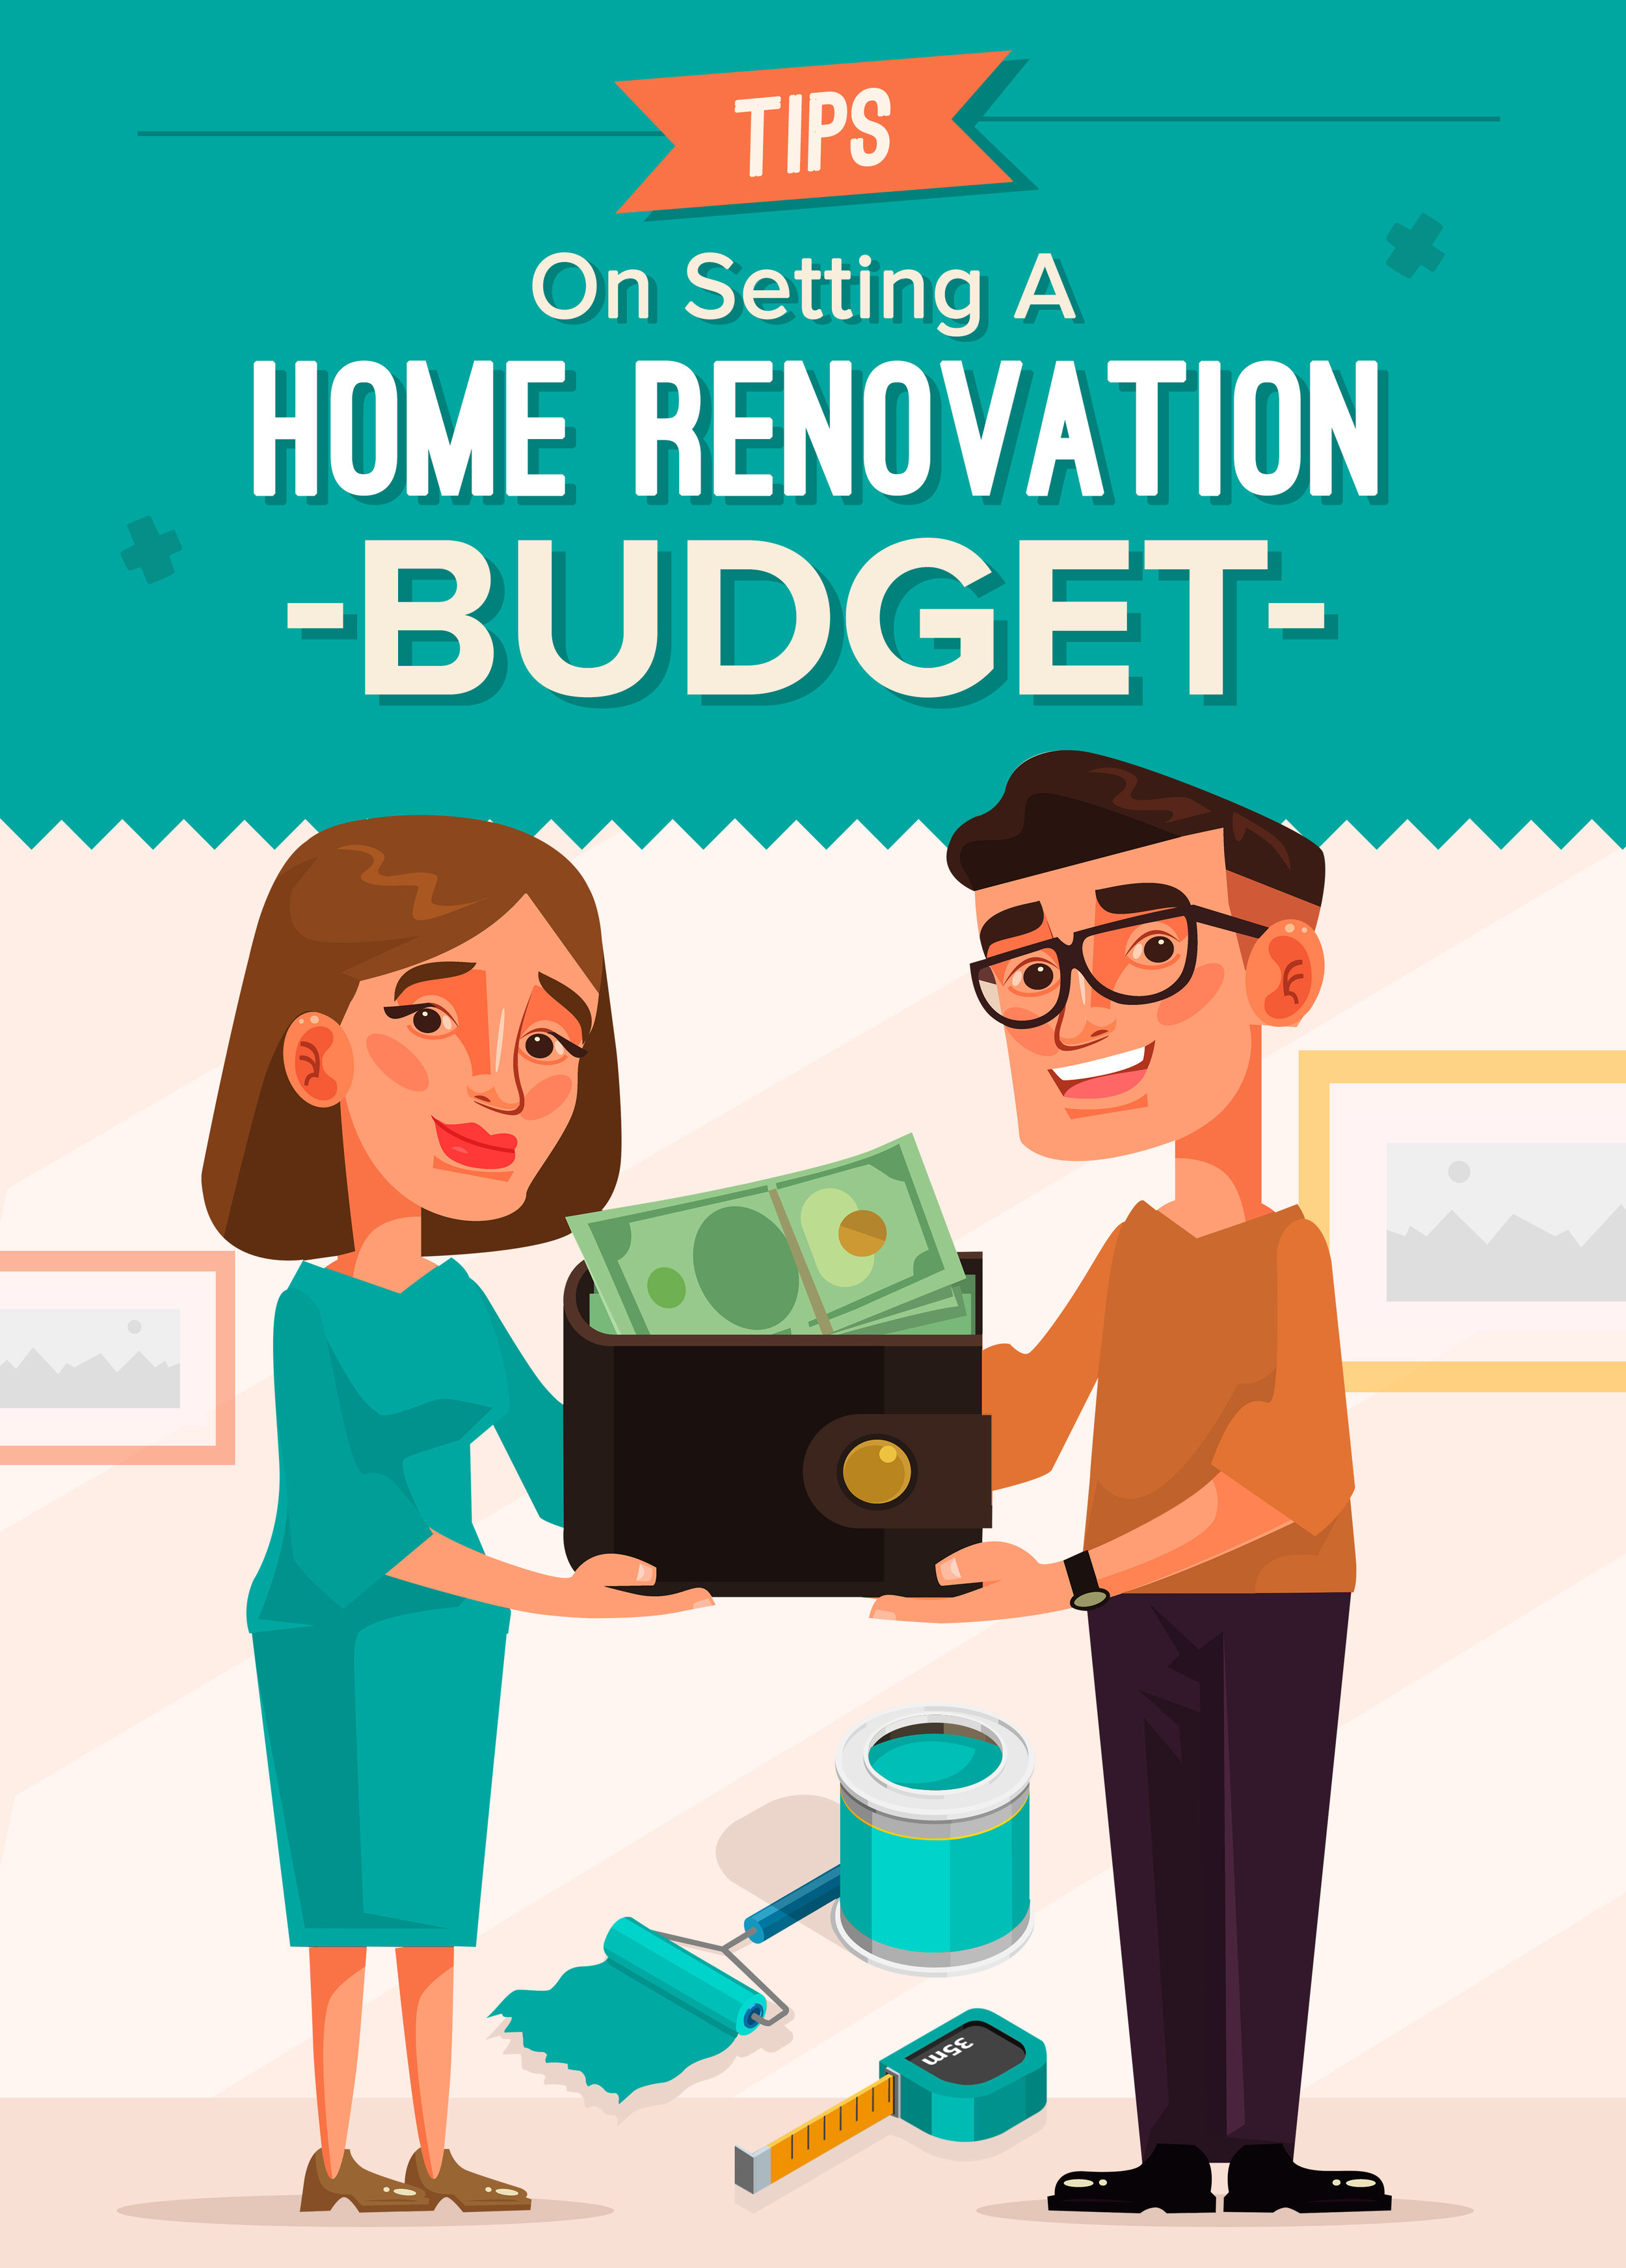 8 Tips On Setting A Home Renovation Budget.jpg